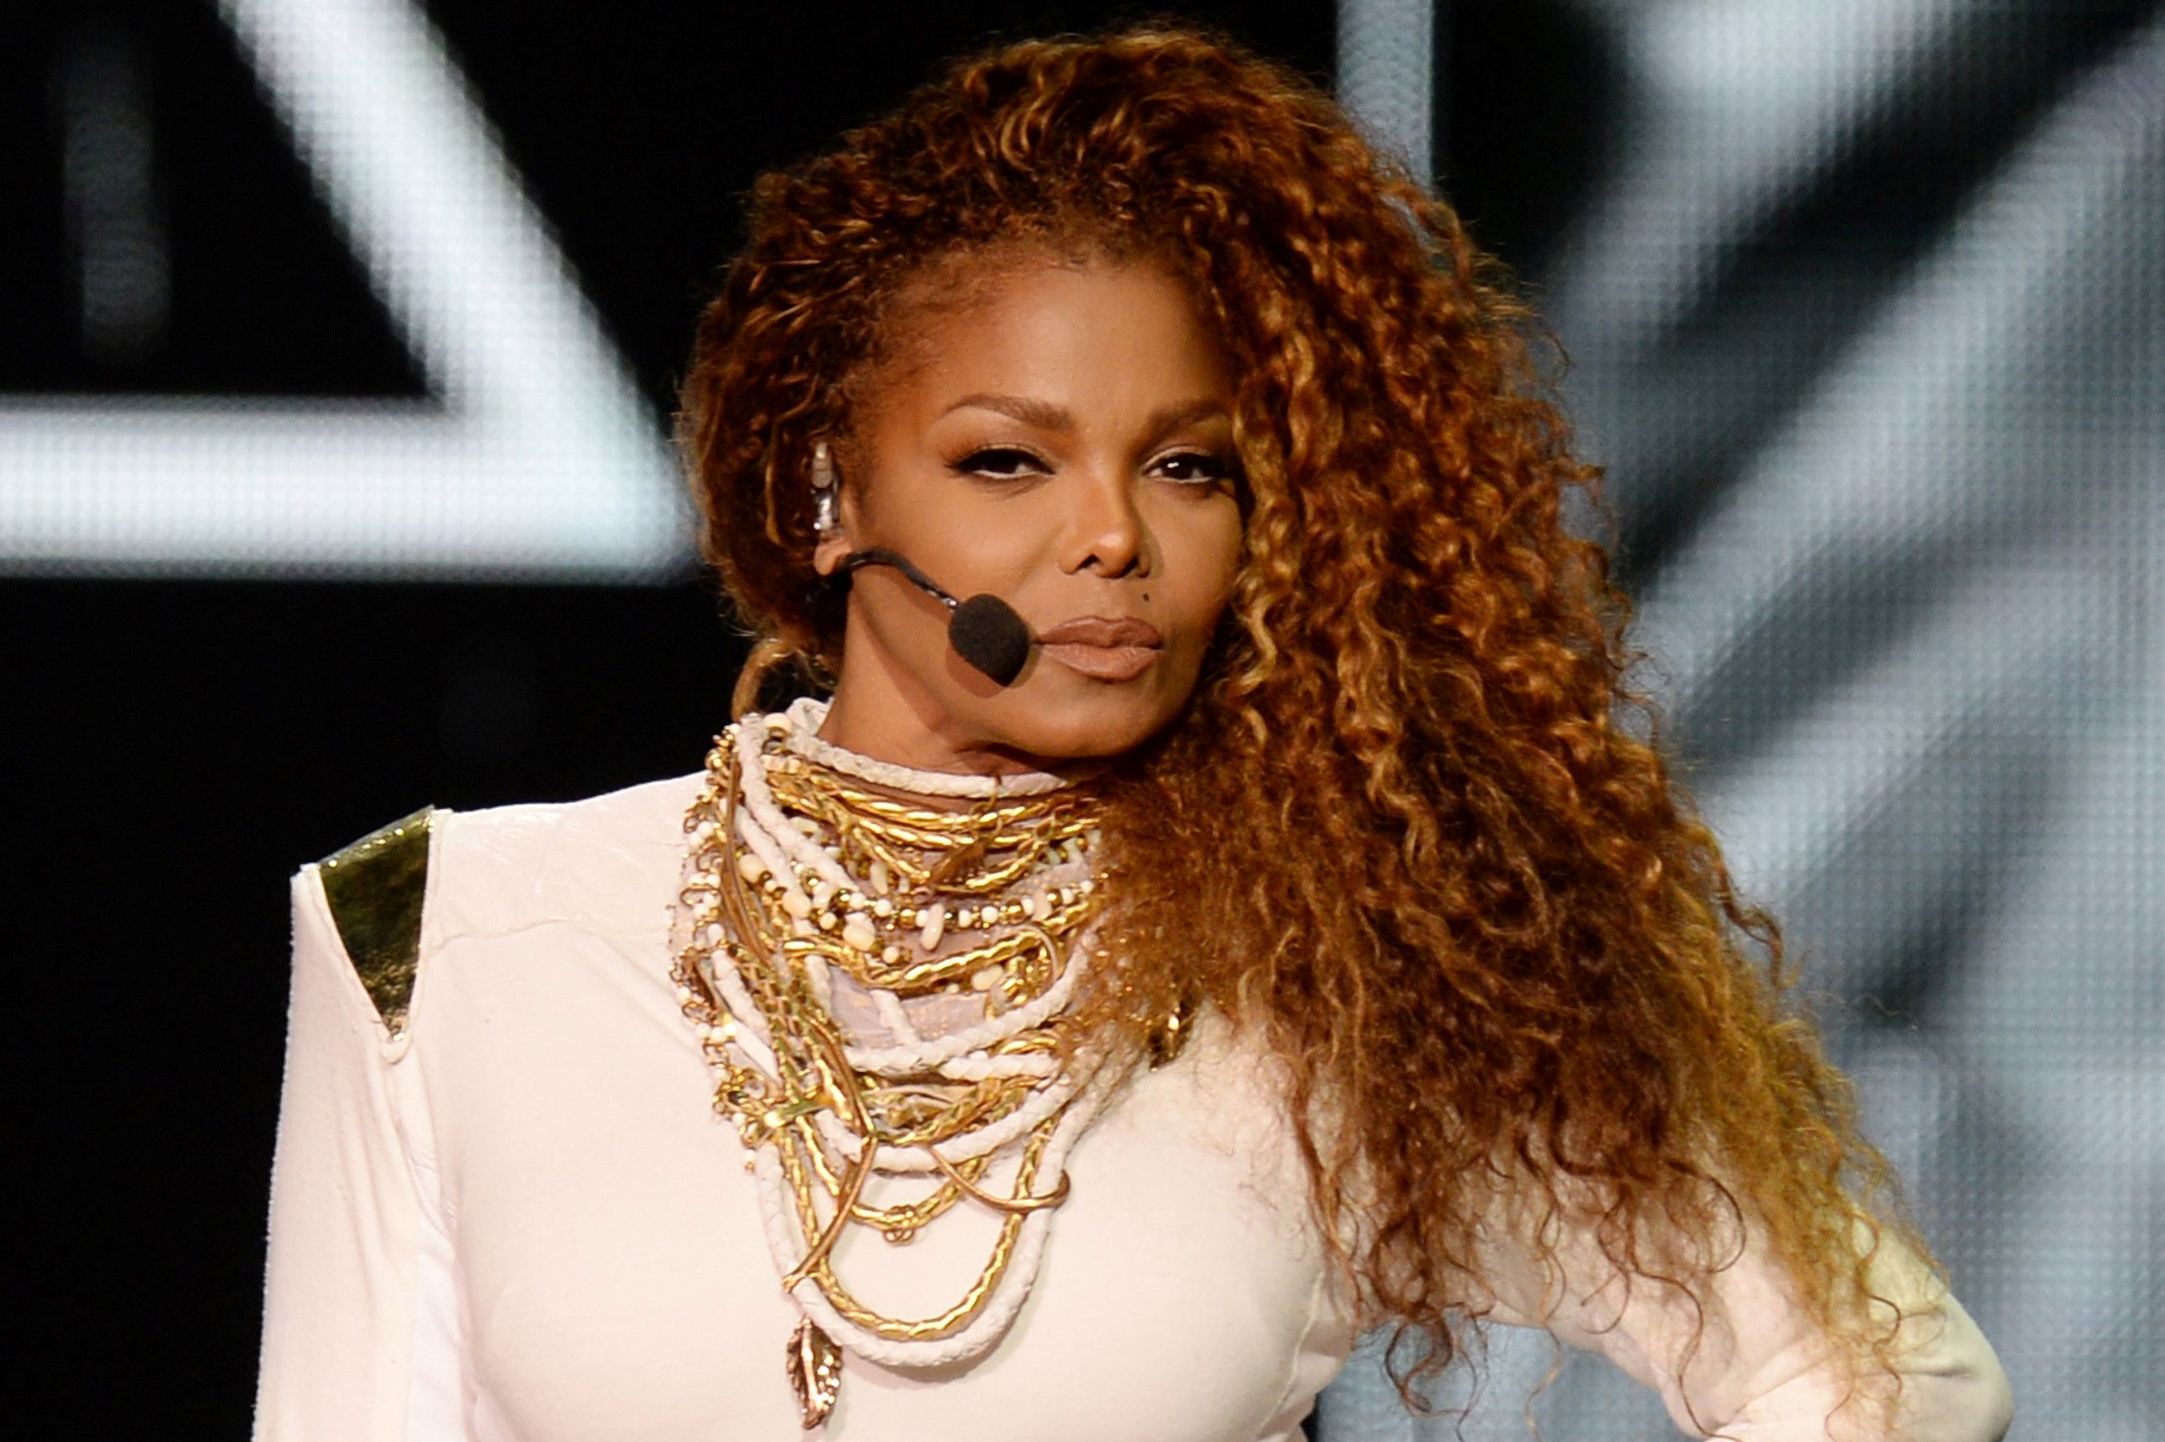 Miami, FL - Miami, FL - Janet Jackson performs live in concert at the American Airlines Arena as part of the 2015 Unbreakable World Tour in Miami, FL.   09/20/2015  Copyright © 2014 AKM-GSI, Inc.      To License These Photos, Please Contact :  Maria Buda  (917) 242-1505  mbuda@akmgsi.com or    Steve Ginsburg  (310) 505-8447  (323) 423-9397  steve@akmgsi.com  sales@akmgsi.com